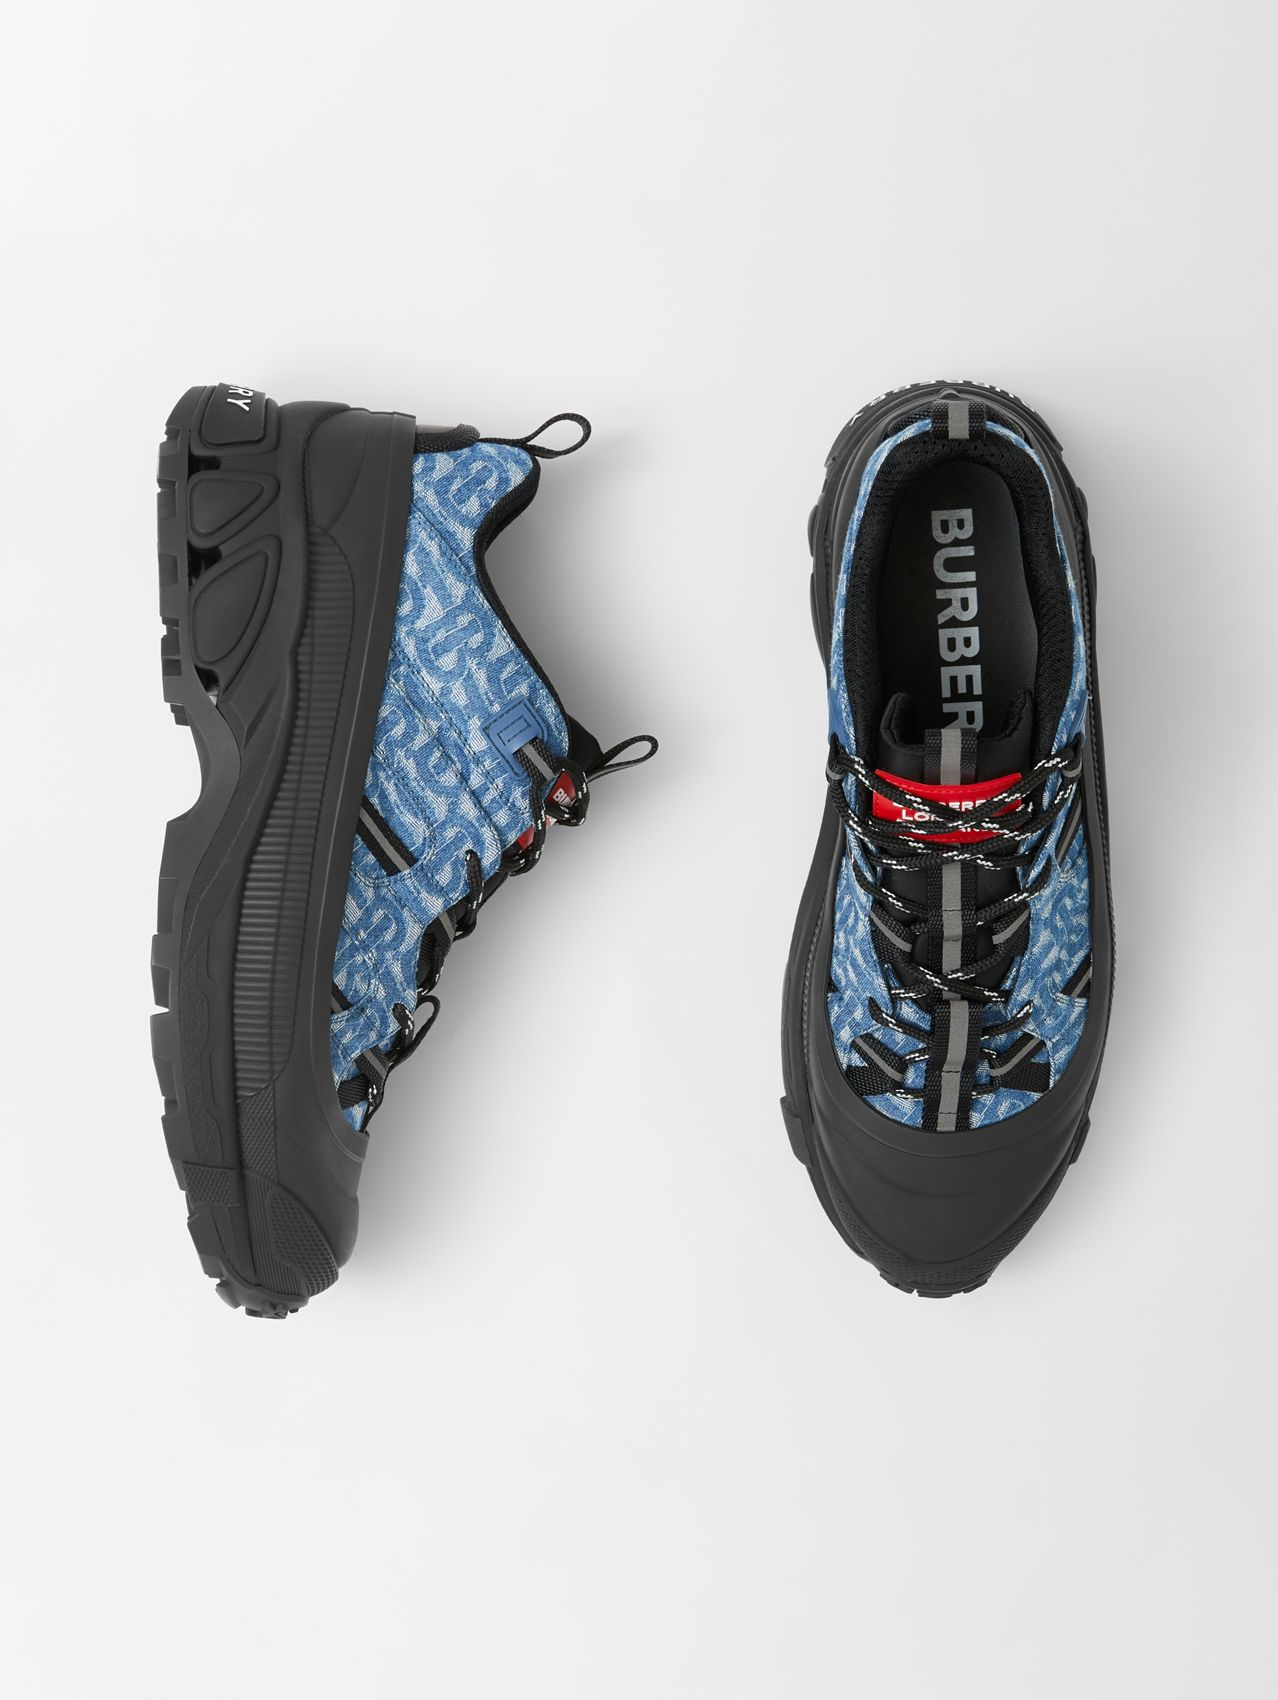 Monogram Print Denim and Leather Arthur Sneakers in Black/blue